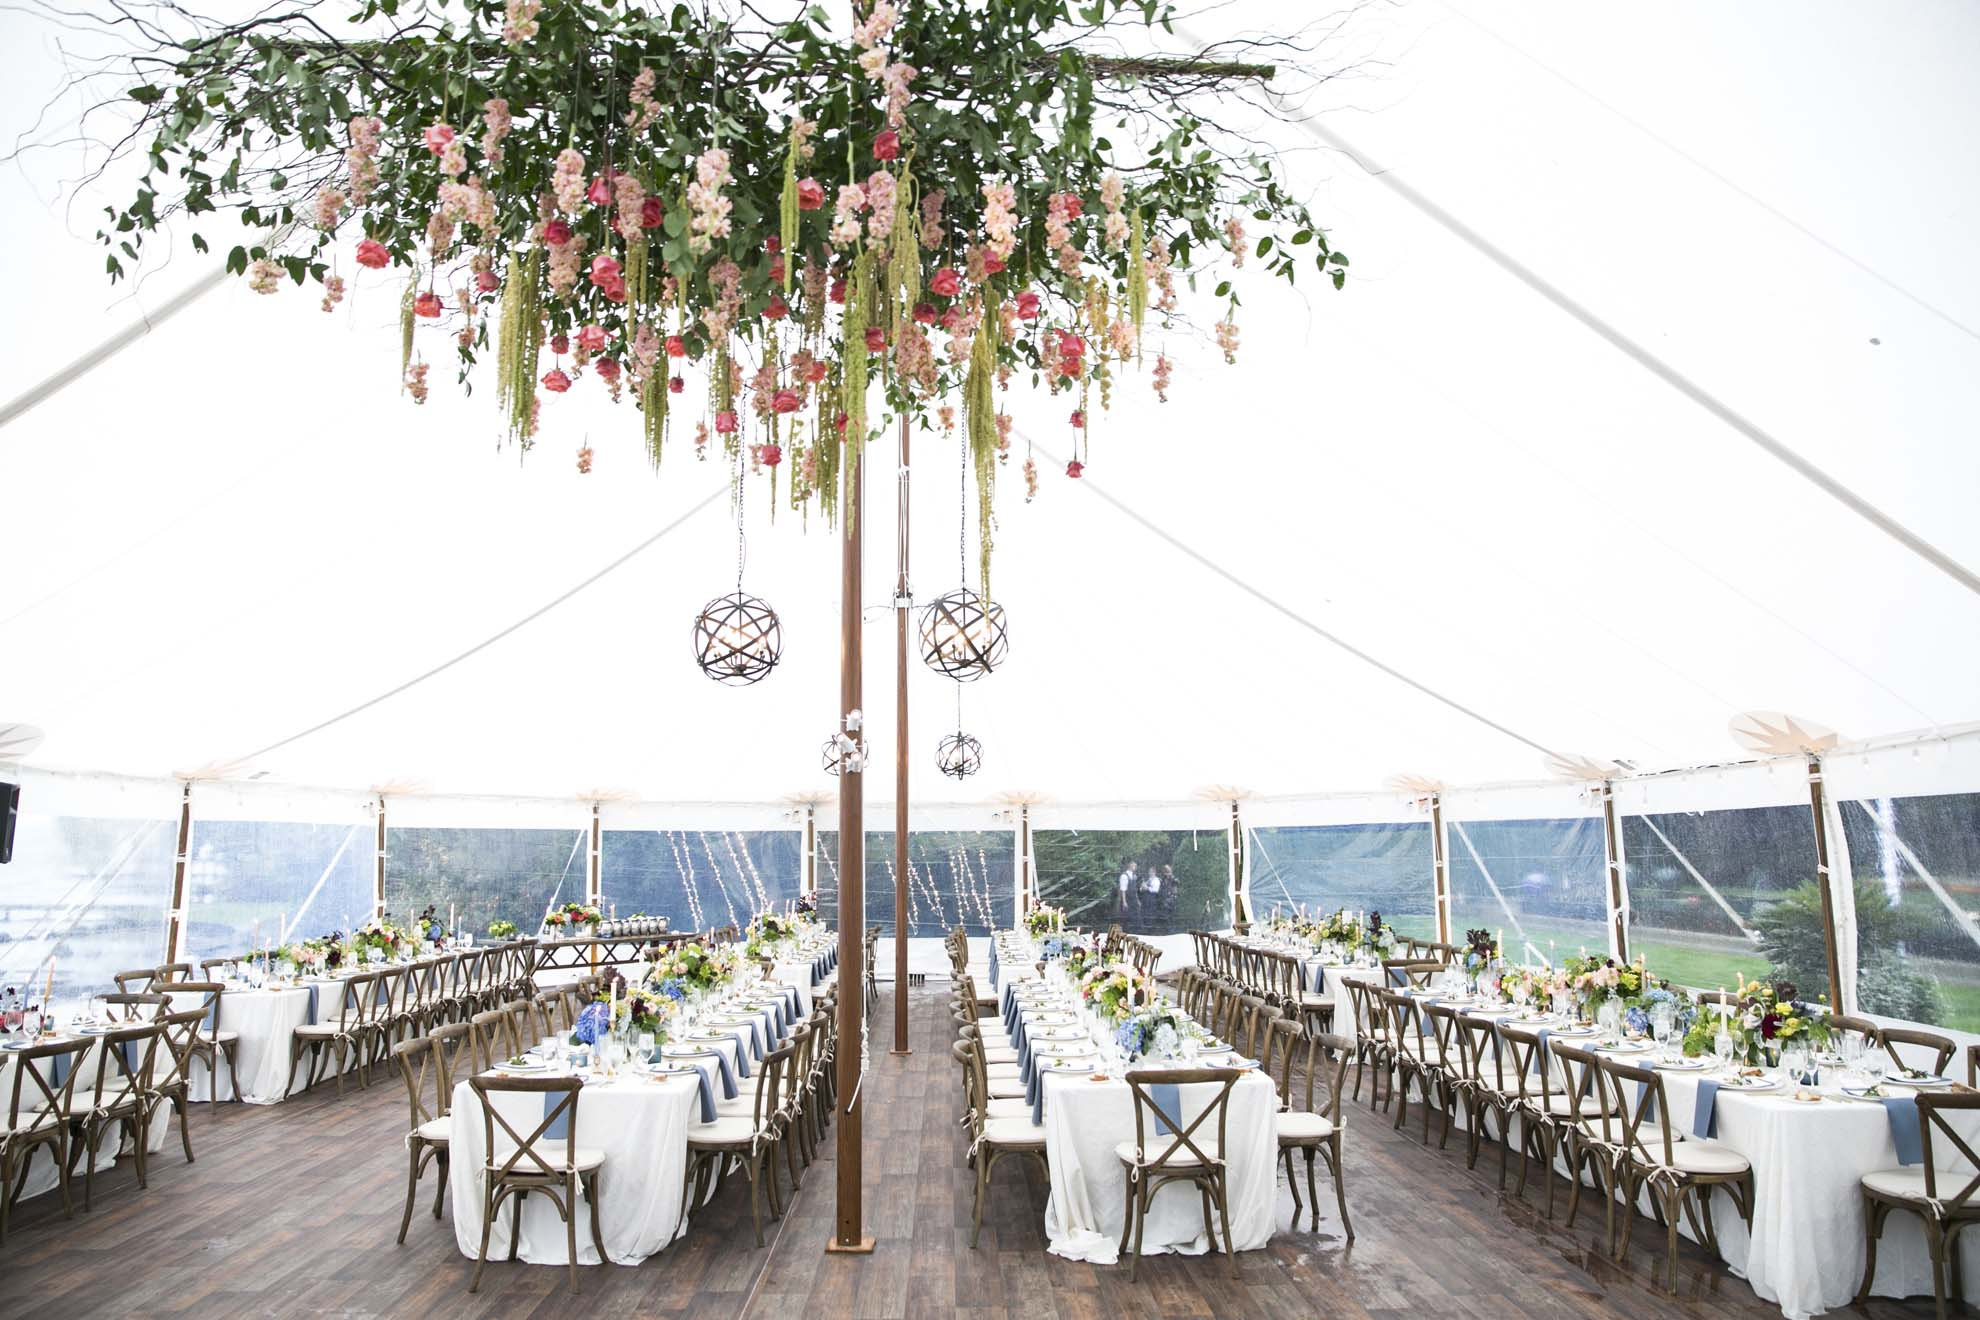 Wedding tent with large floral chandelier above dance floor  with long reception tables and Vineyard chairs